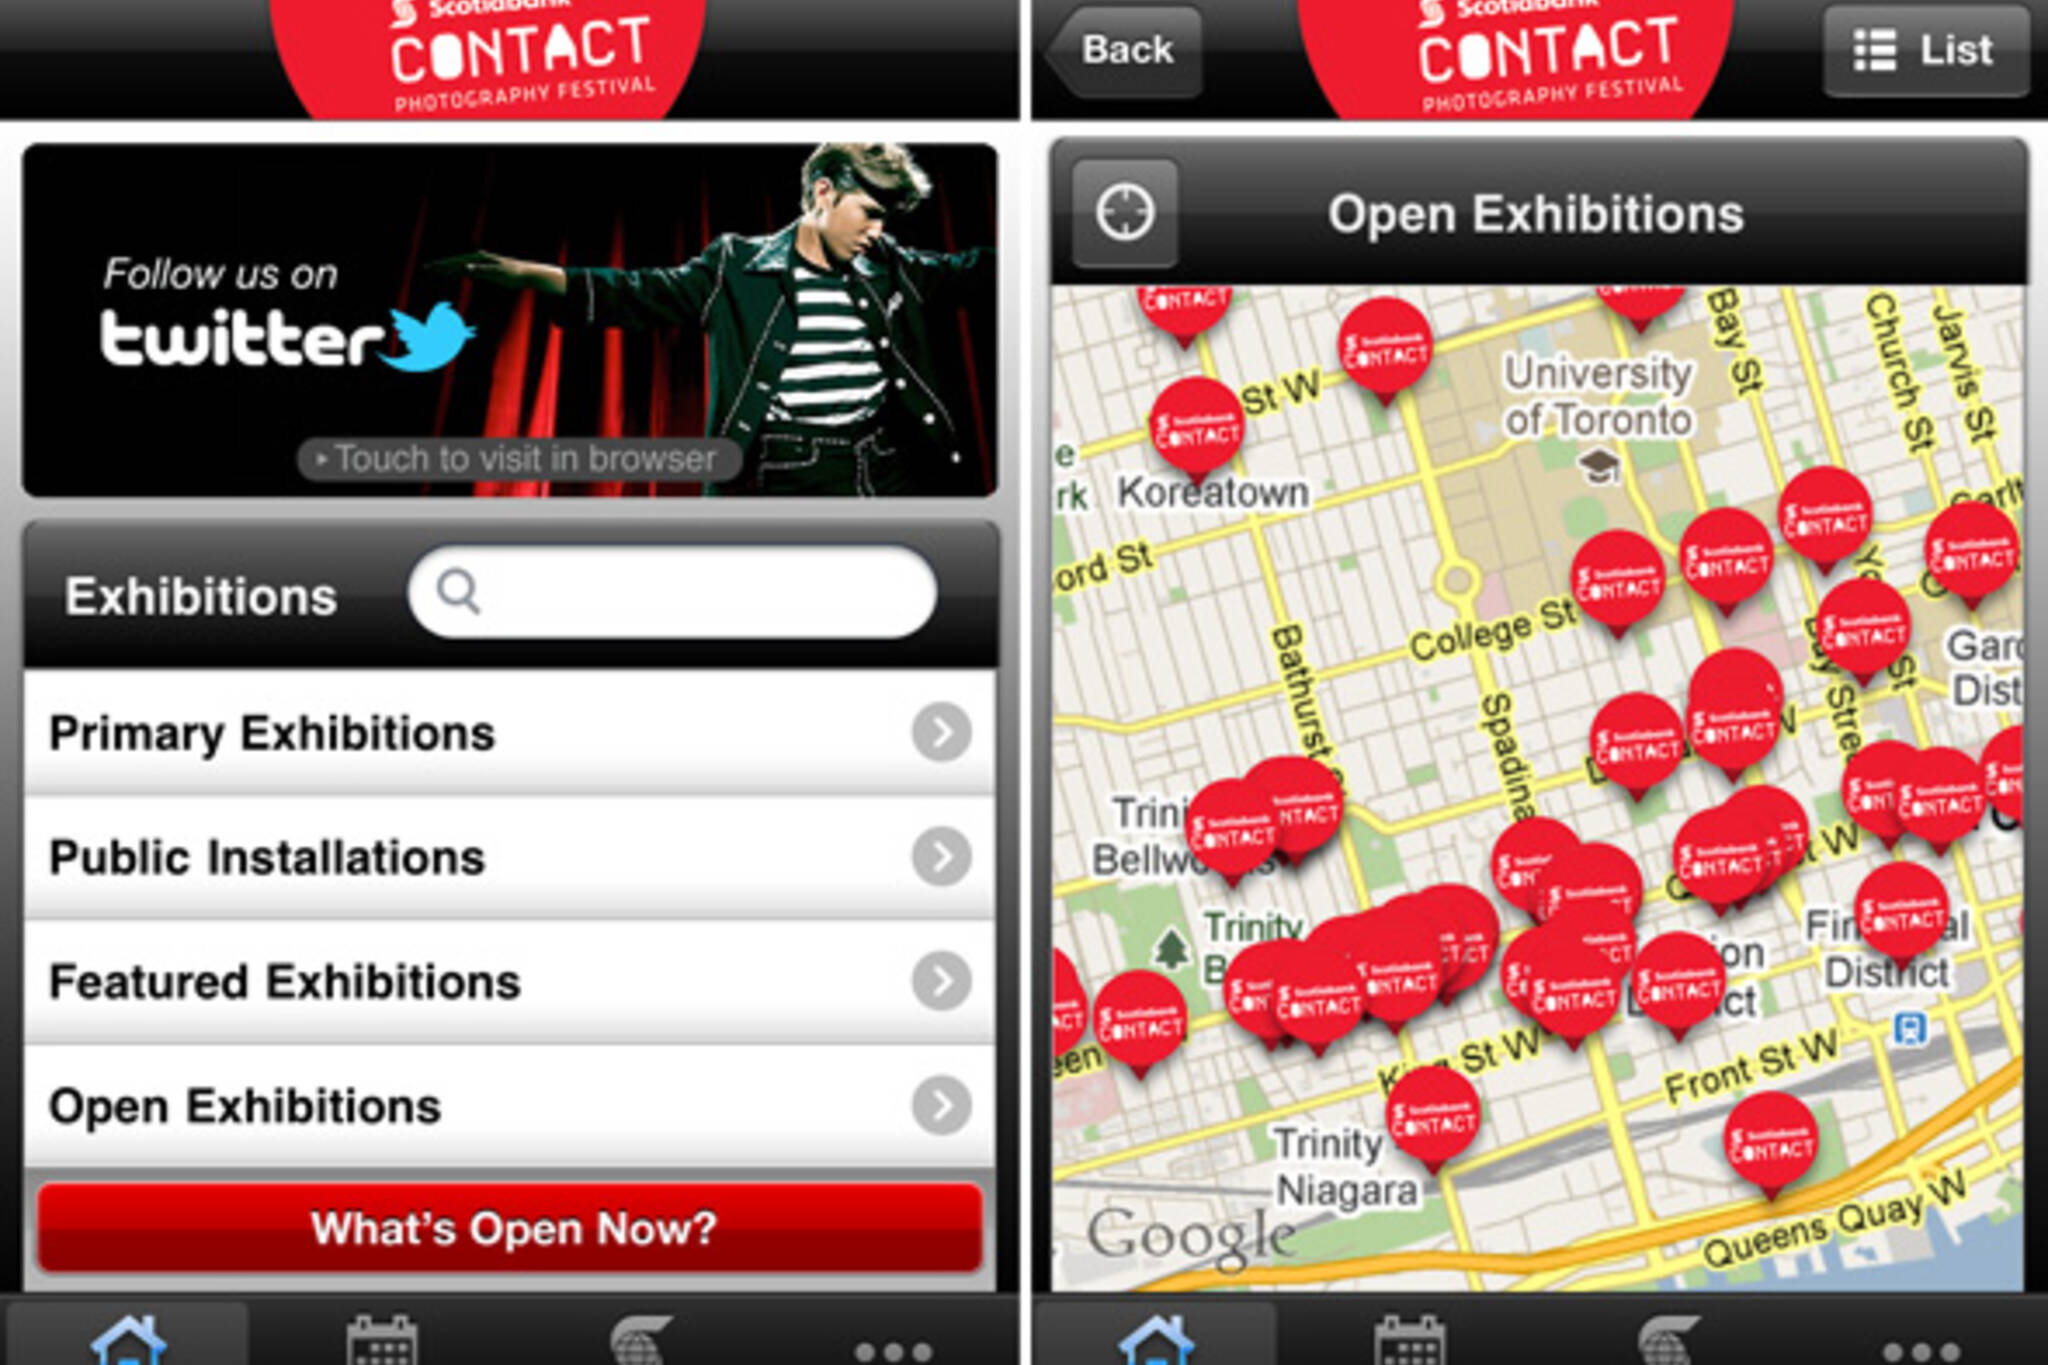 Contact Photography Festival App